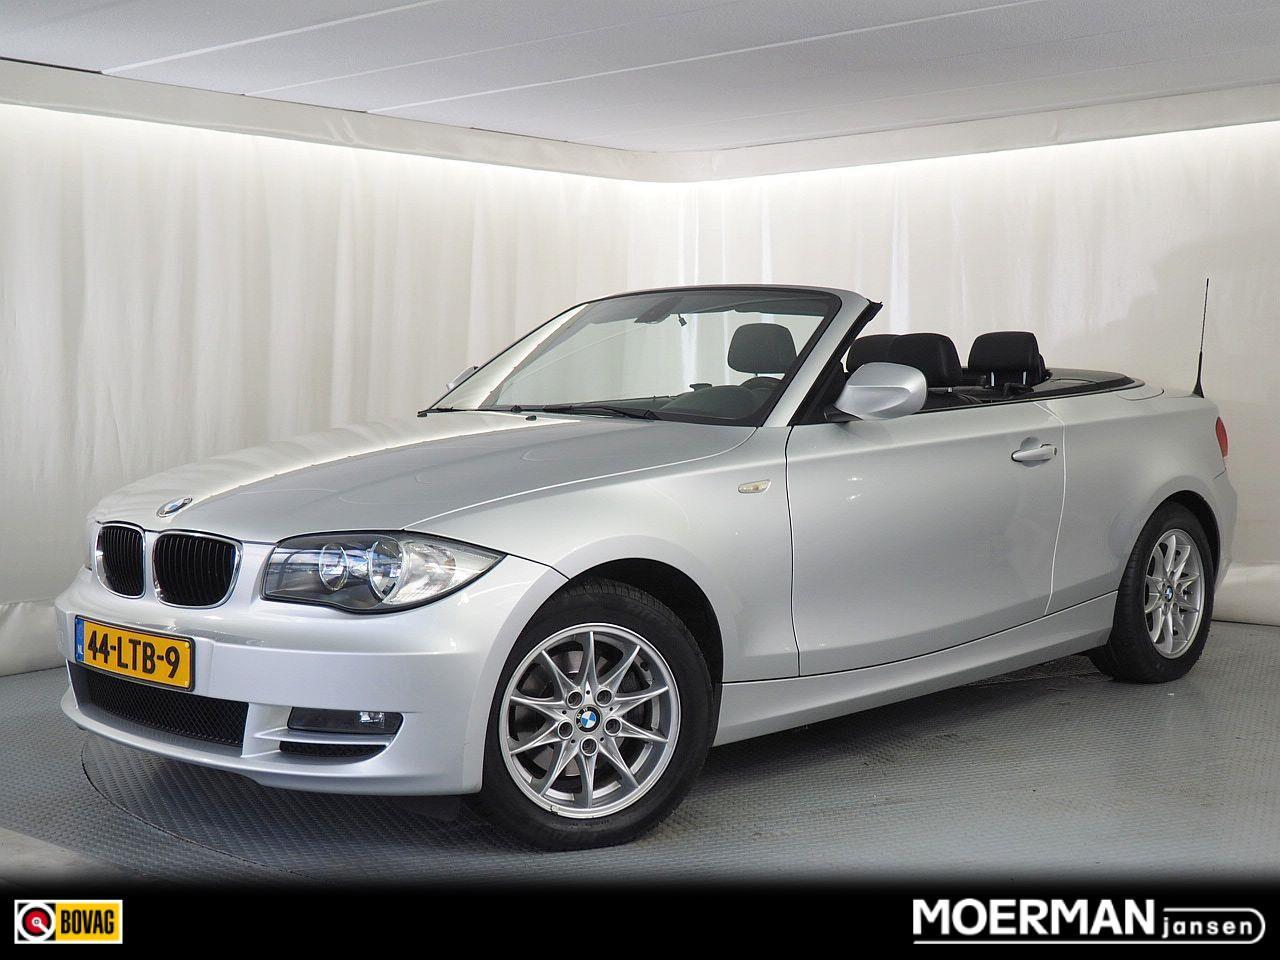 Bmw 1 serie Cabrio 118i high executive äutomaat / lederen interieur / windblokker / voll.historie